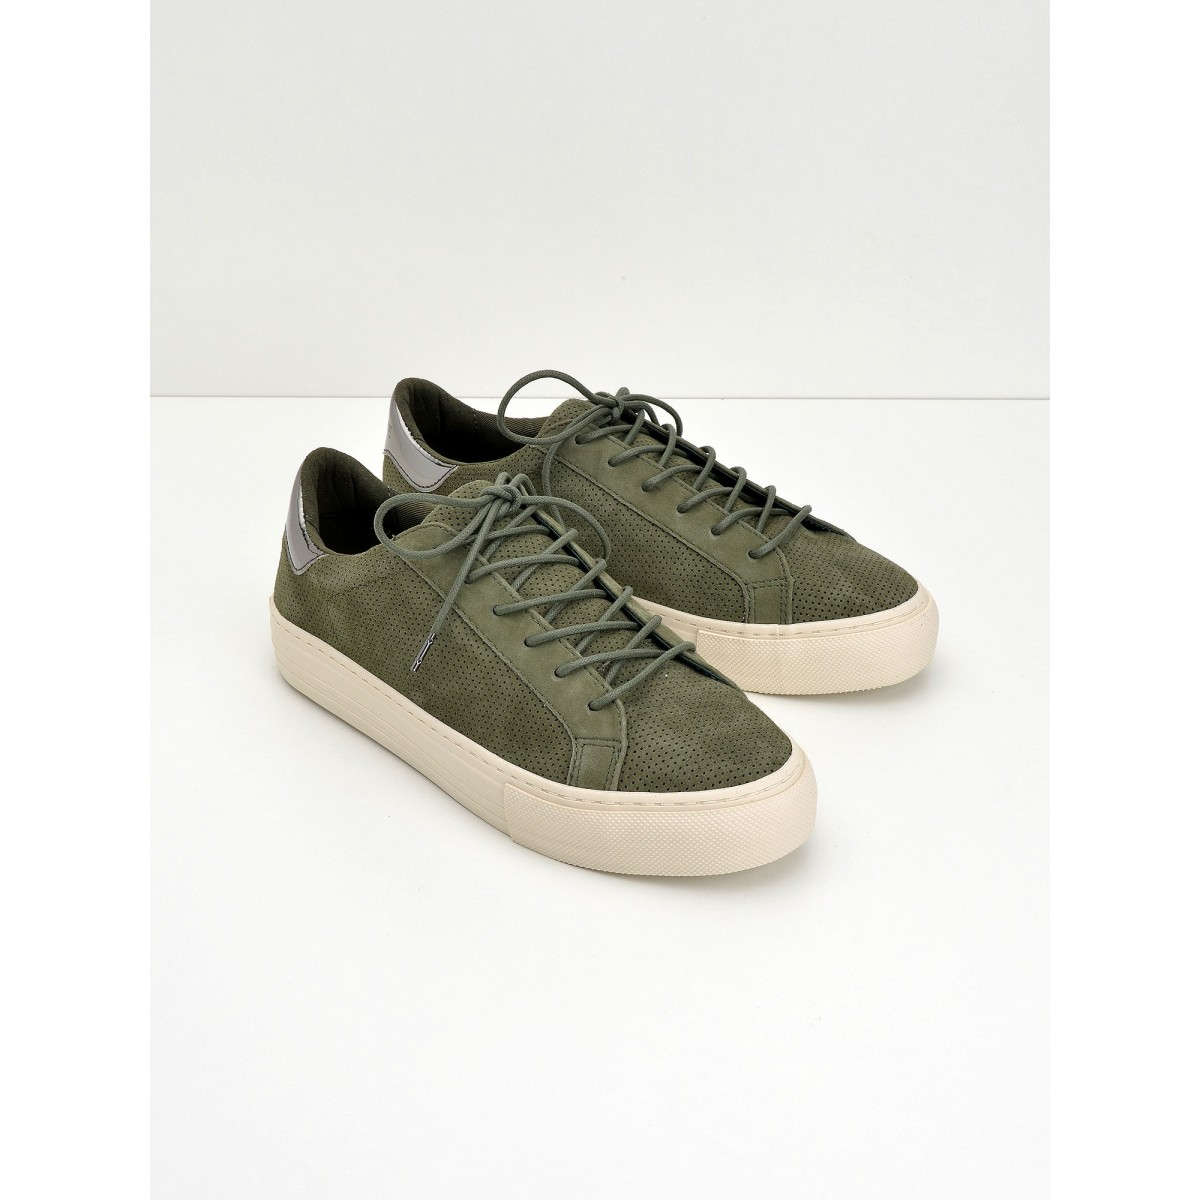 No Name Arcade Sneaker - Punch Goat Sued - Mint